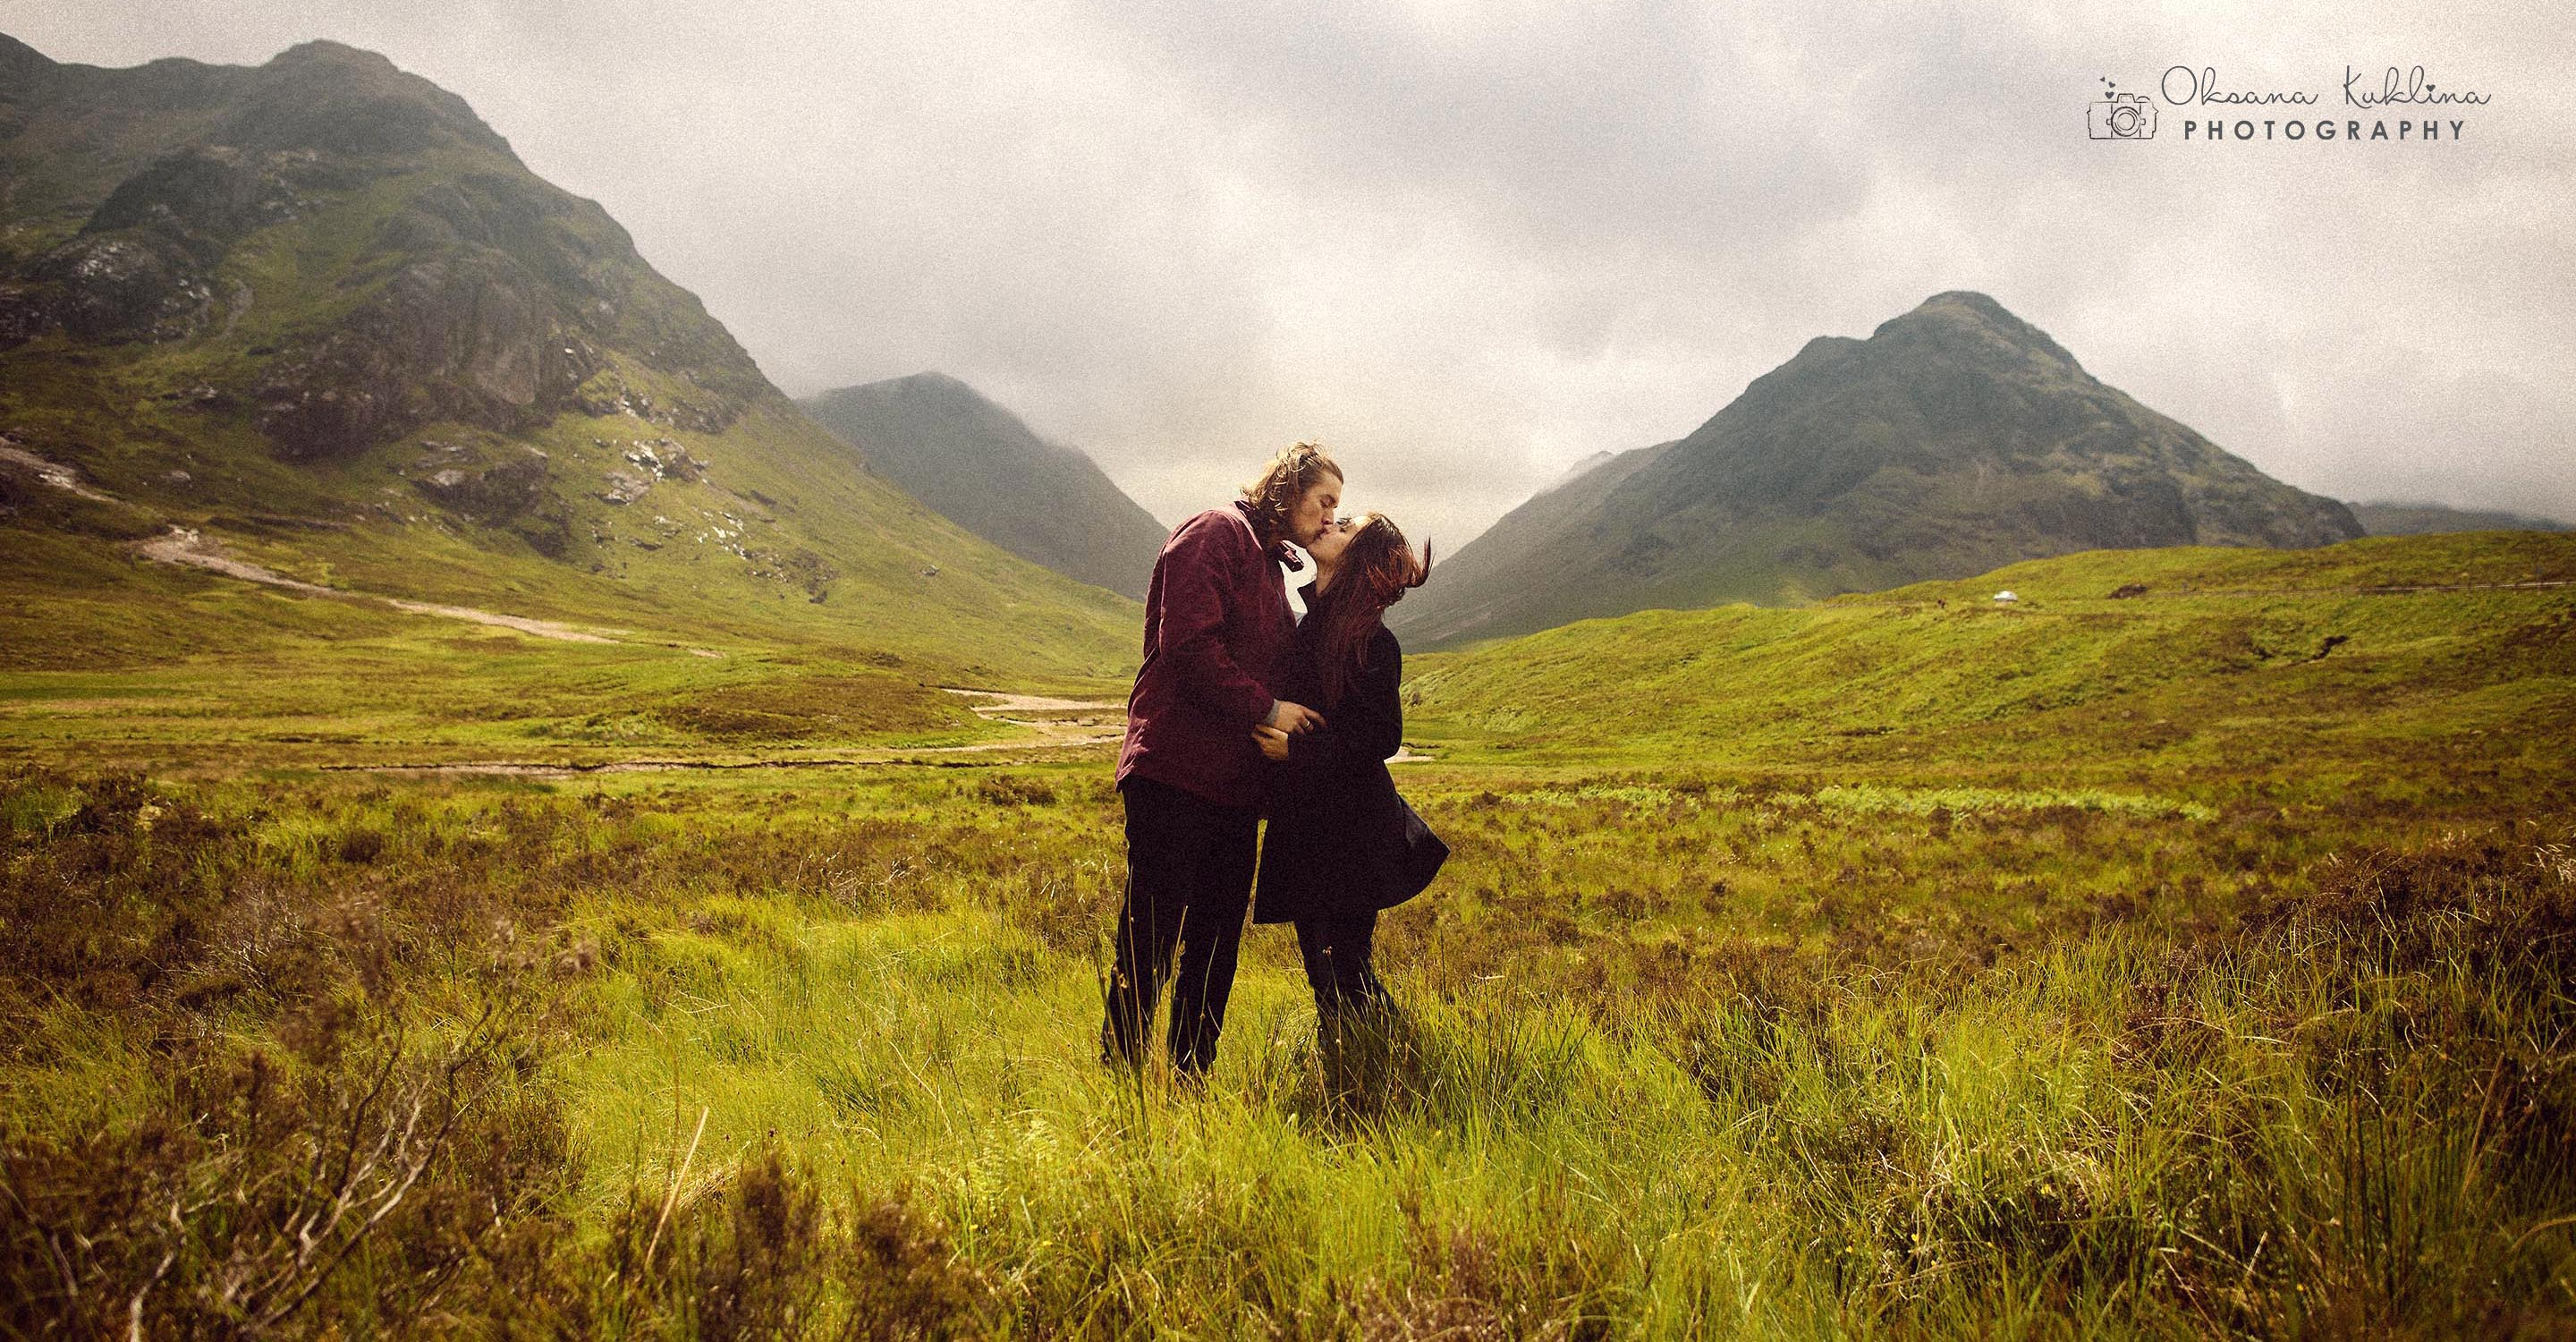 Highlands Wedding Photographer - Scotland Elopement - Adventurous elopement